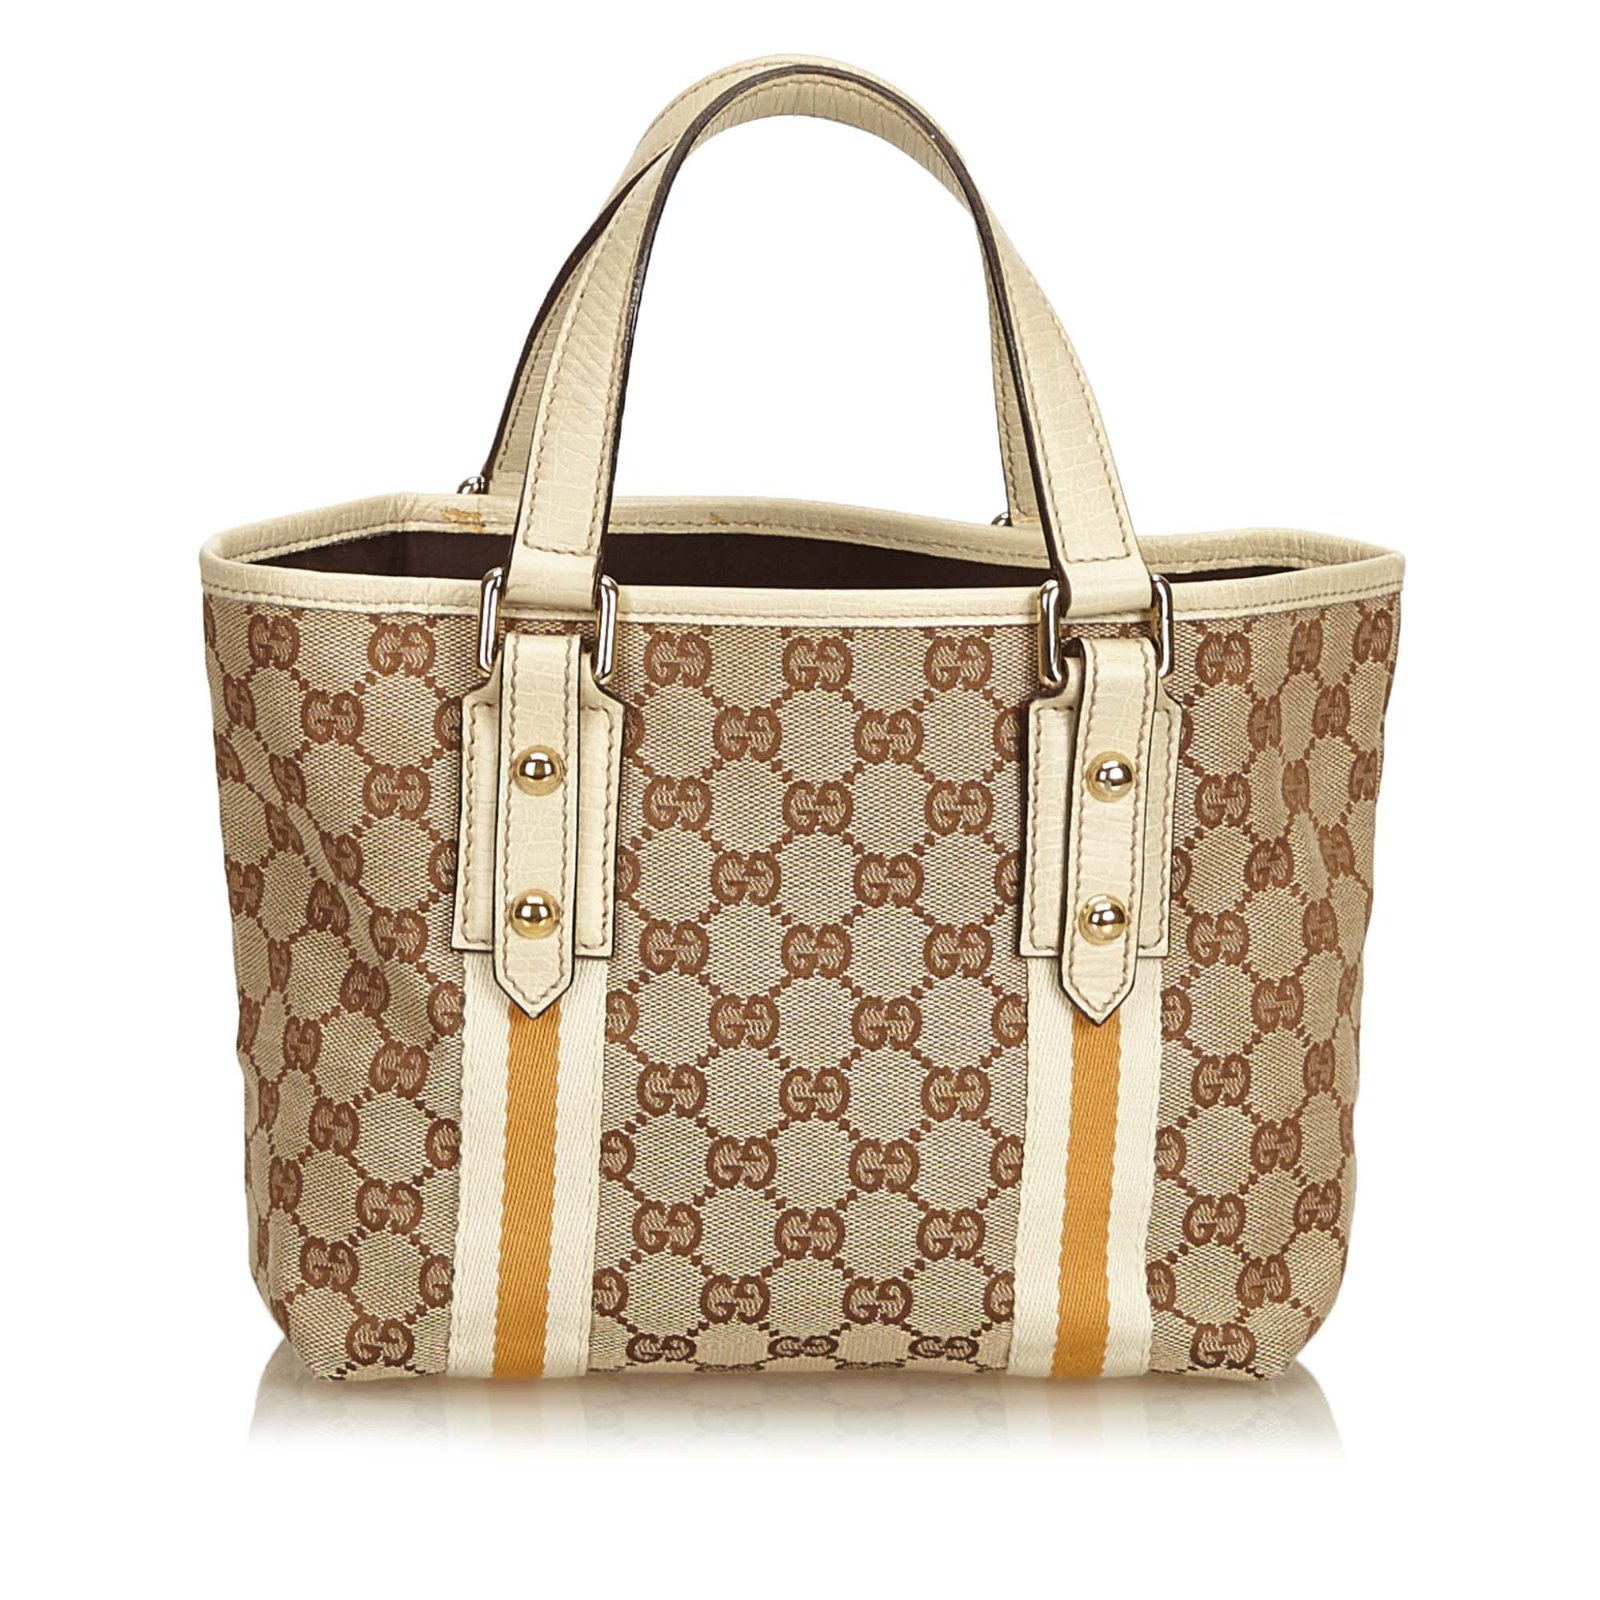 4835065f2cd3fa Gucci Nylon Guccissima Tote Bag – Patmo Technologies Limited